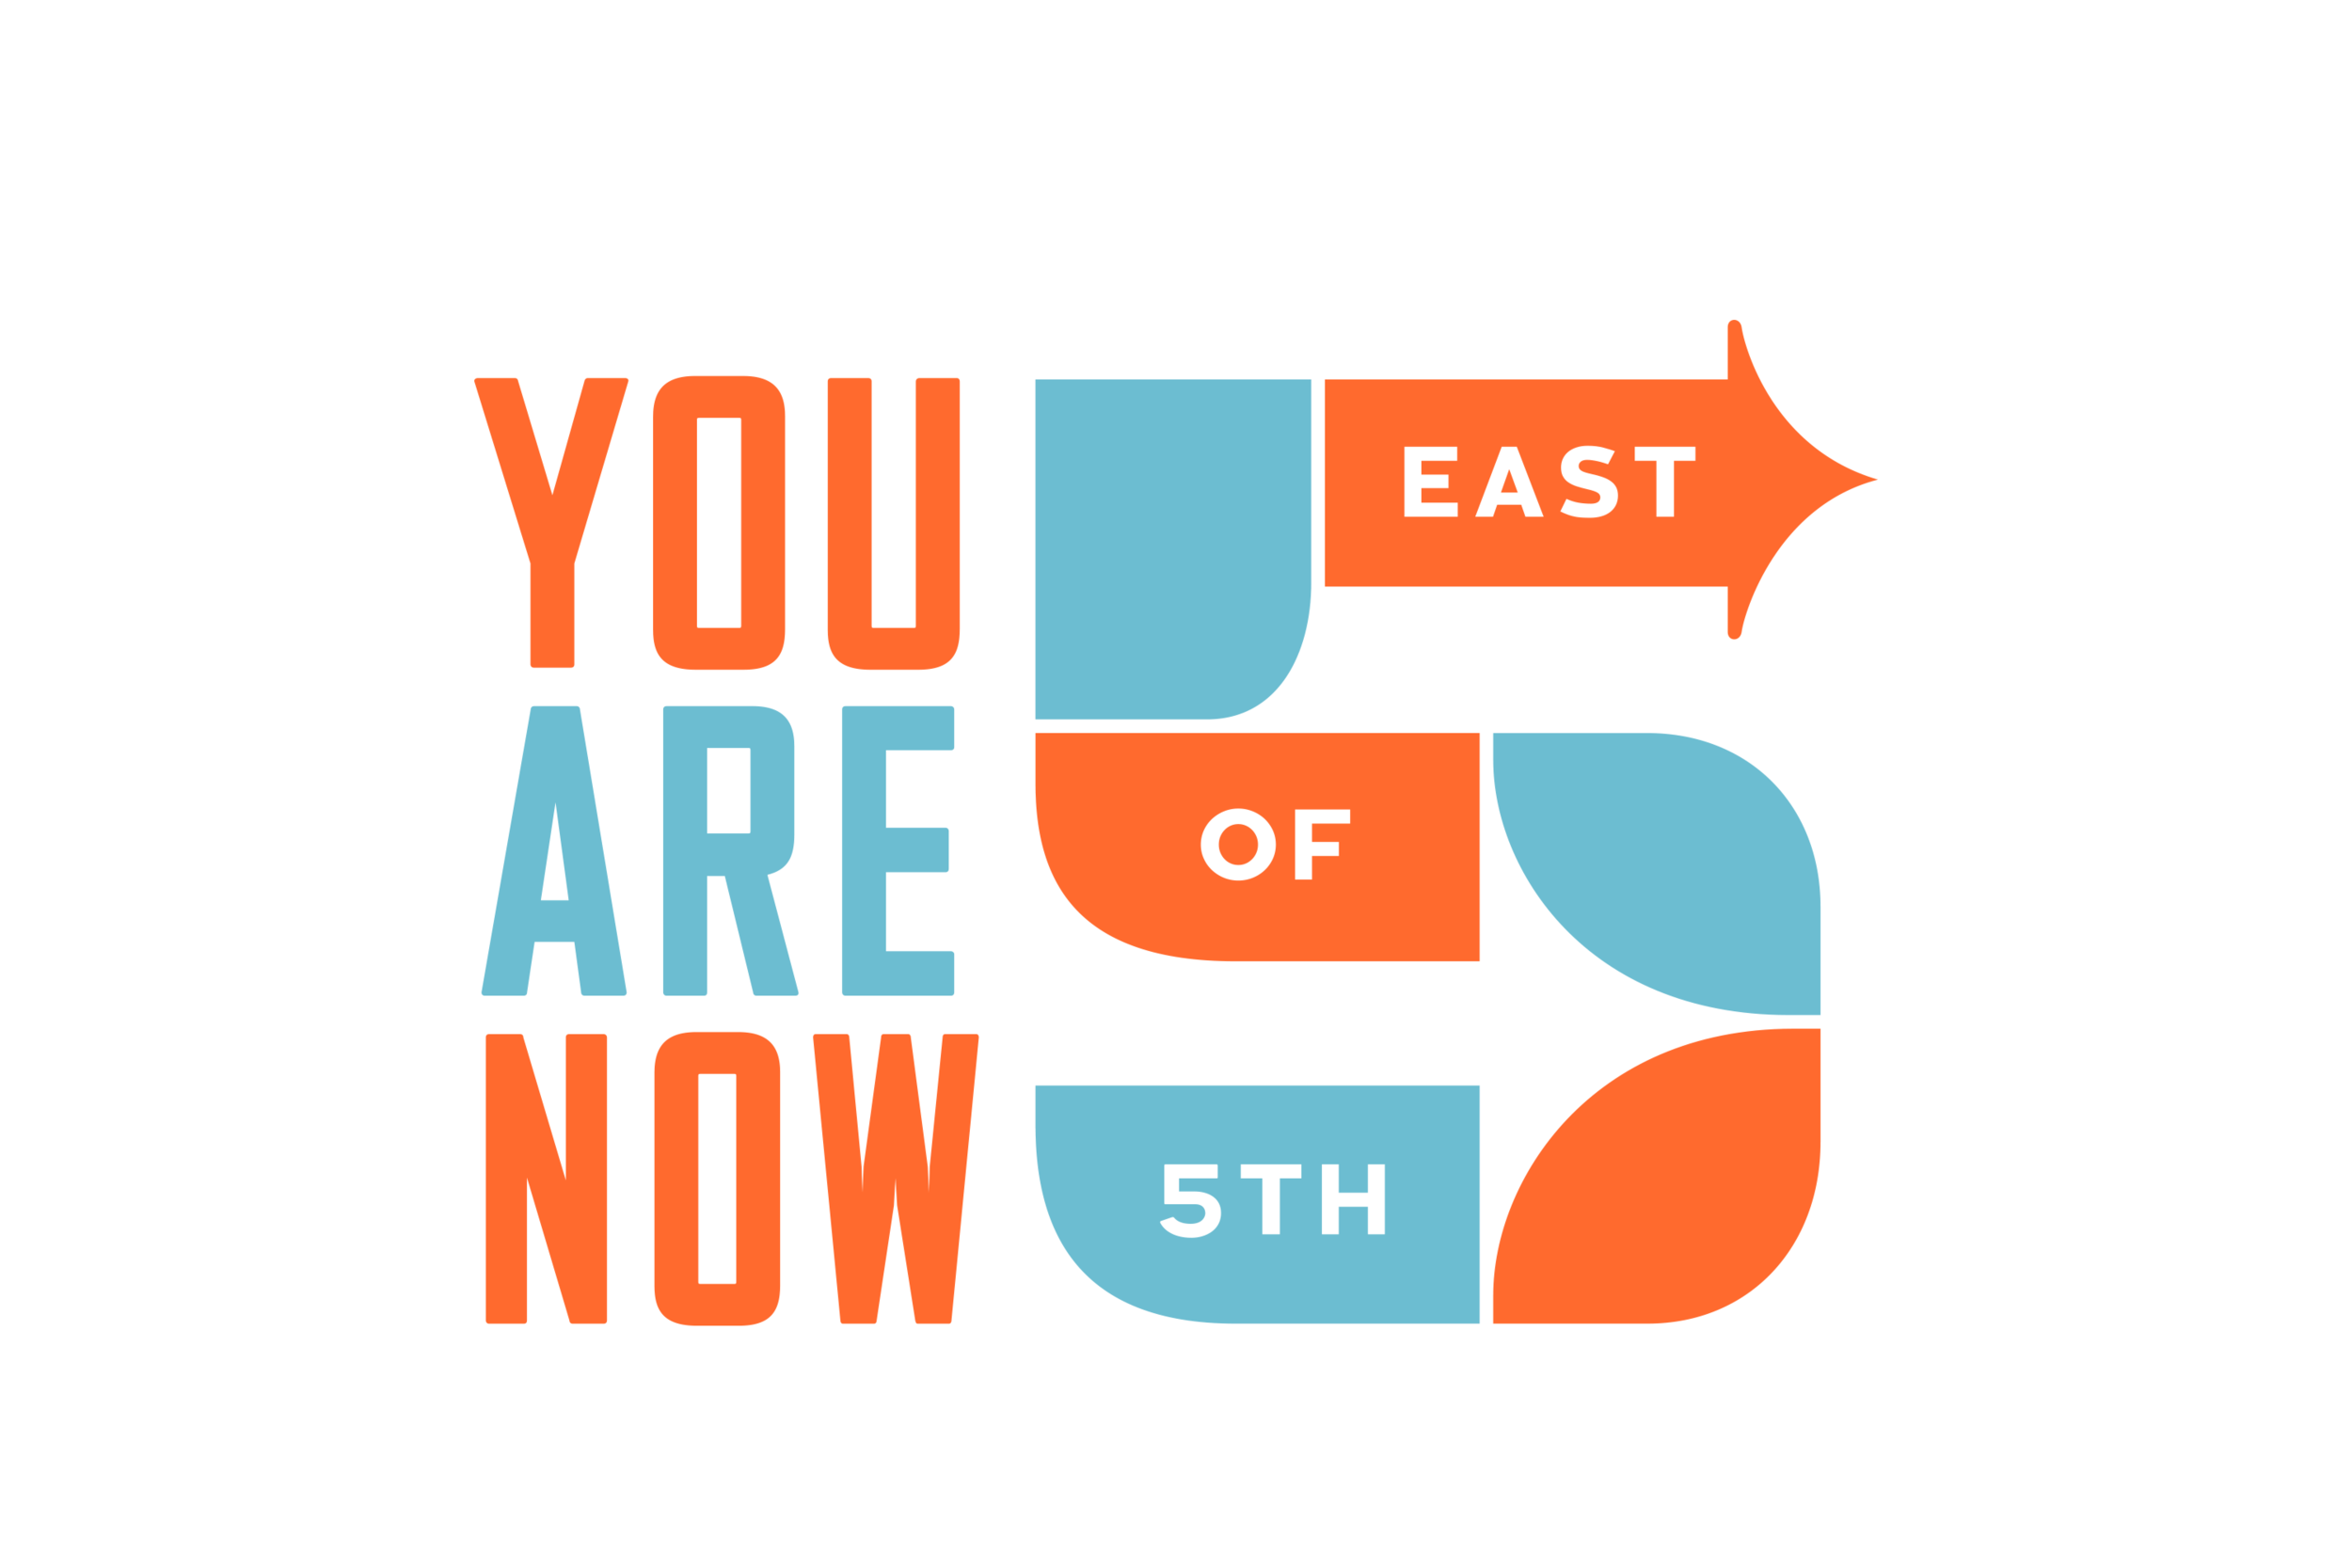 you-are-now-east-of-5th.png